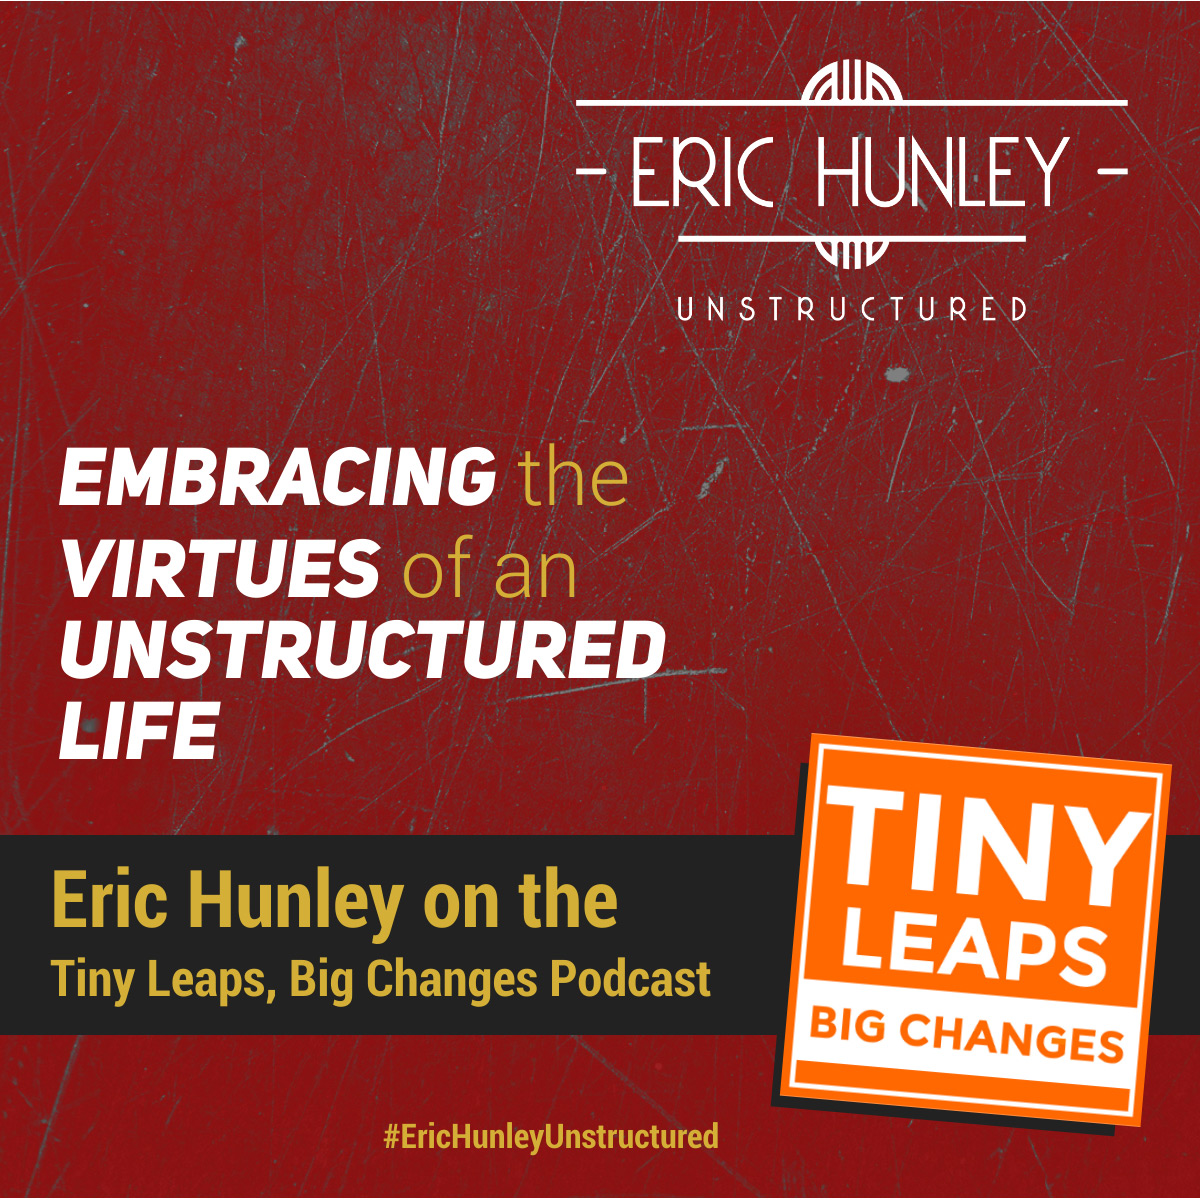 Eric Hunley Podcast Appearance Interviews - Tiny Leaps, Big Changes Podcast Square Post